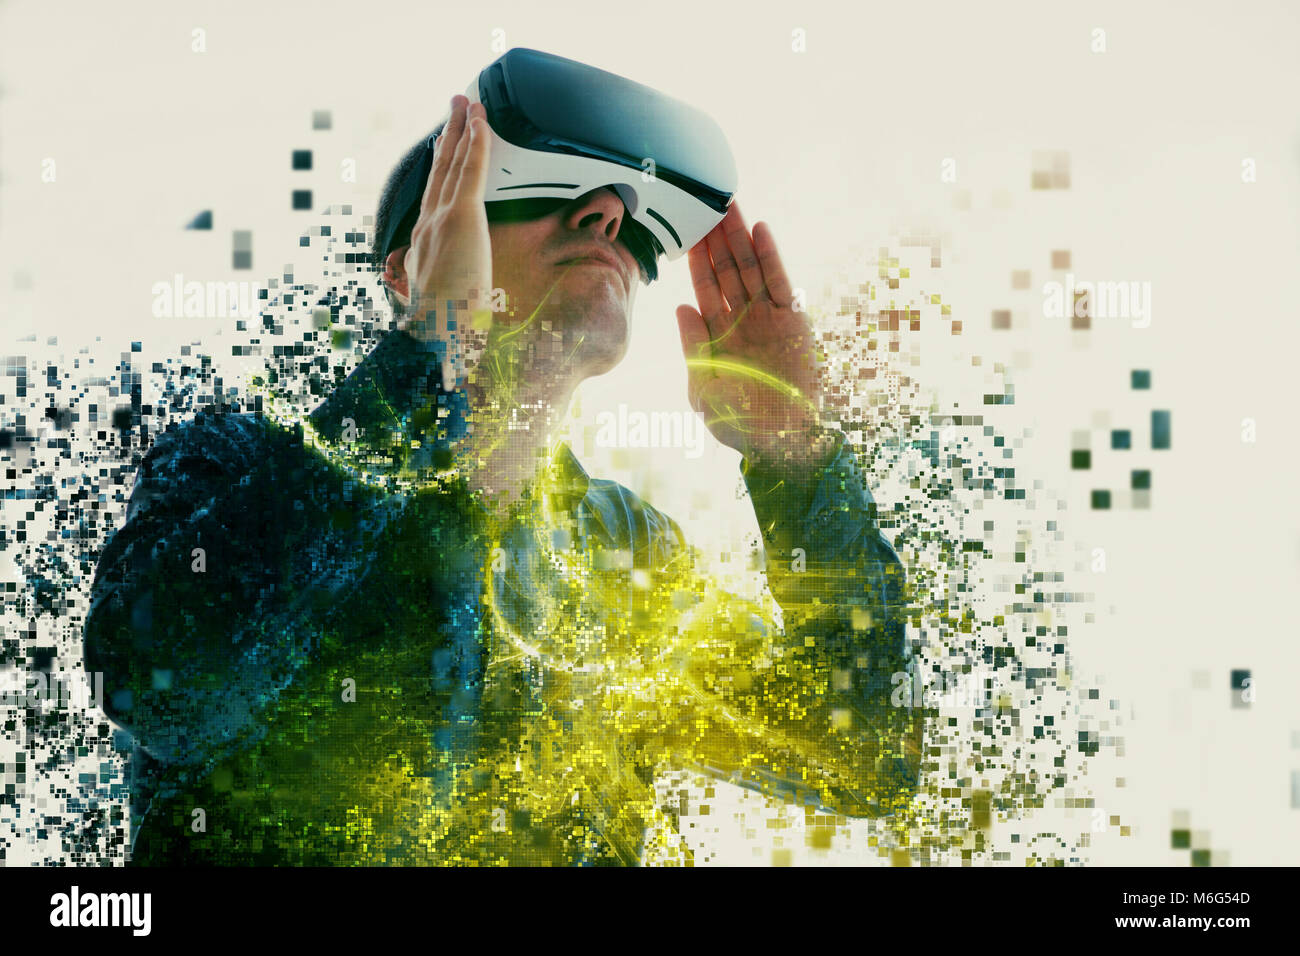 A person in virtual glasses flies to pixels. The man with glasses of virtual reality. Future technology concept. - Stock Image